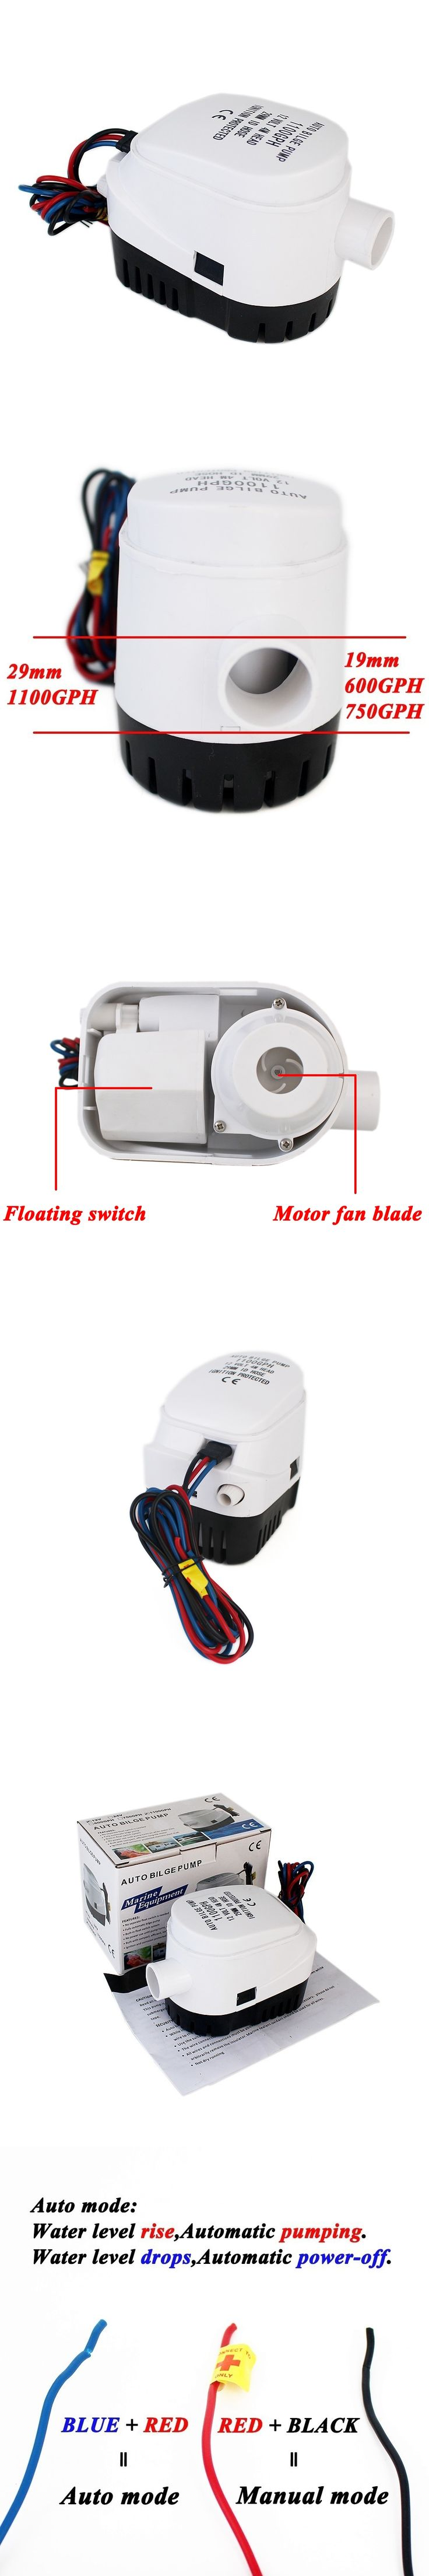 600GPH DC 12V Automatic bilge pump for boat with auto float switch,submersible electric water pump,12 volt 12volt 600 GPH